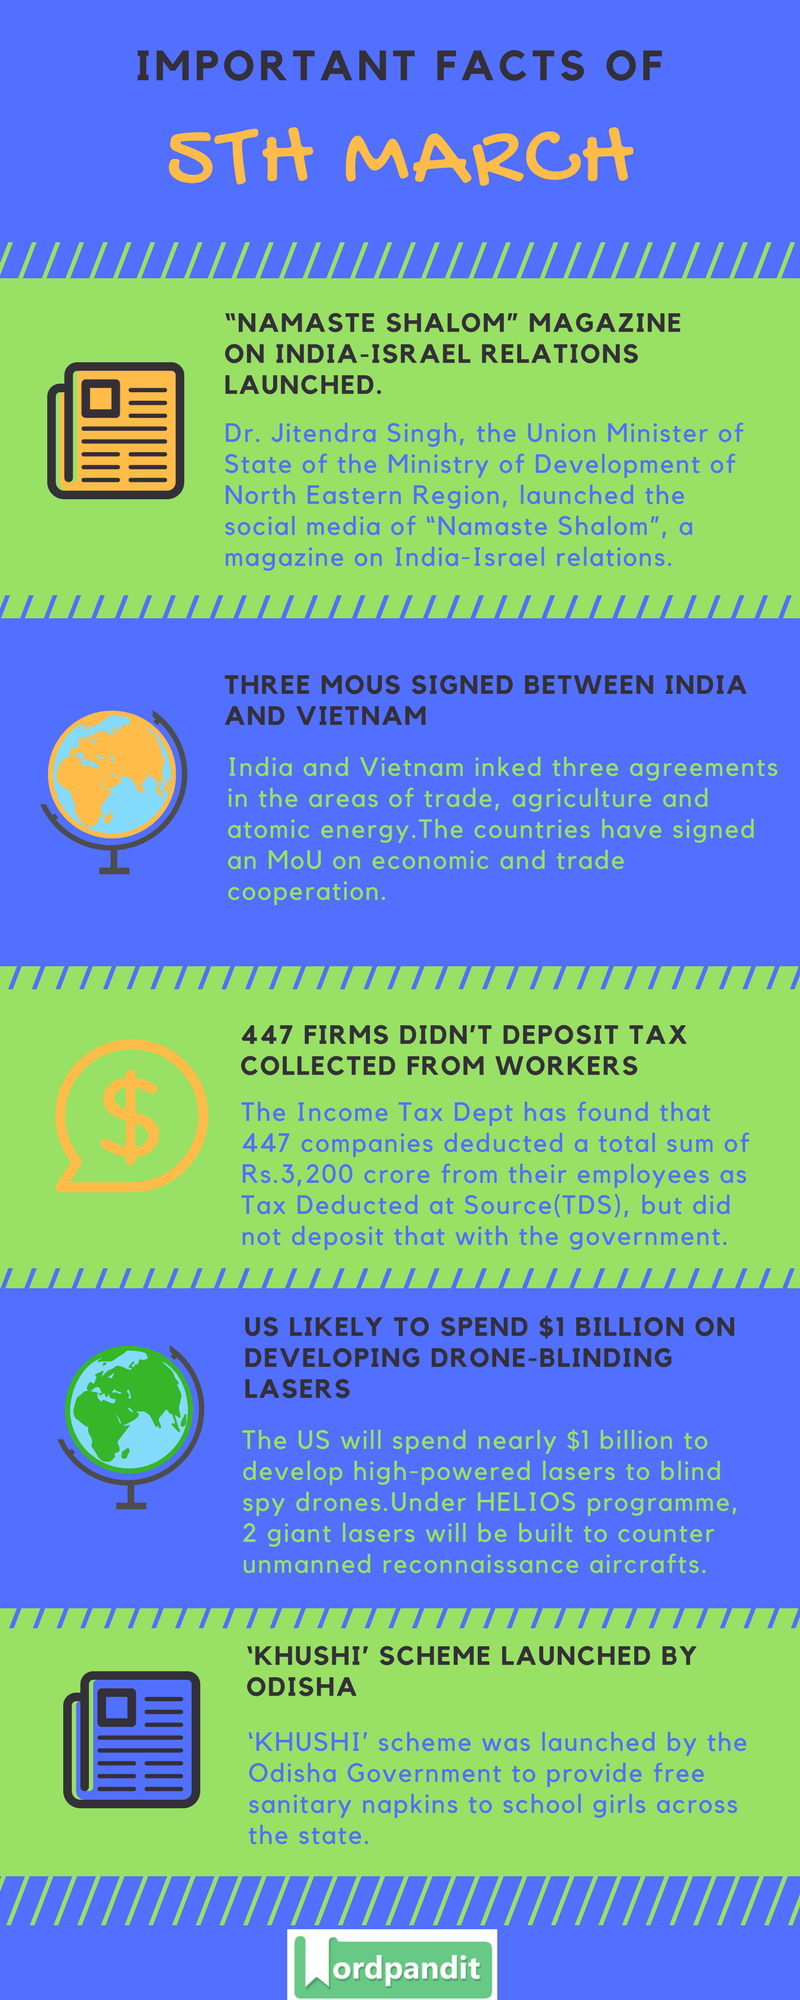 Daily Current Affairs 5 March 2018 Current Affairs Quiz March 5 2018 Current Affairs Infographic